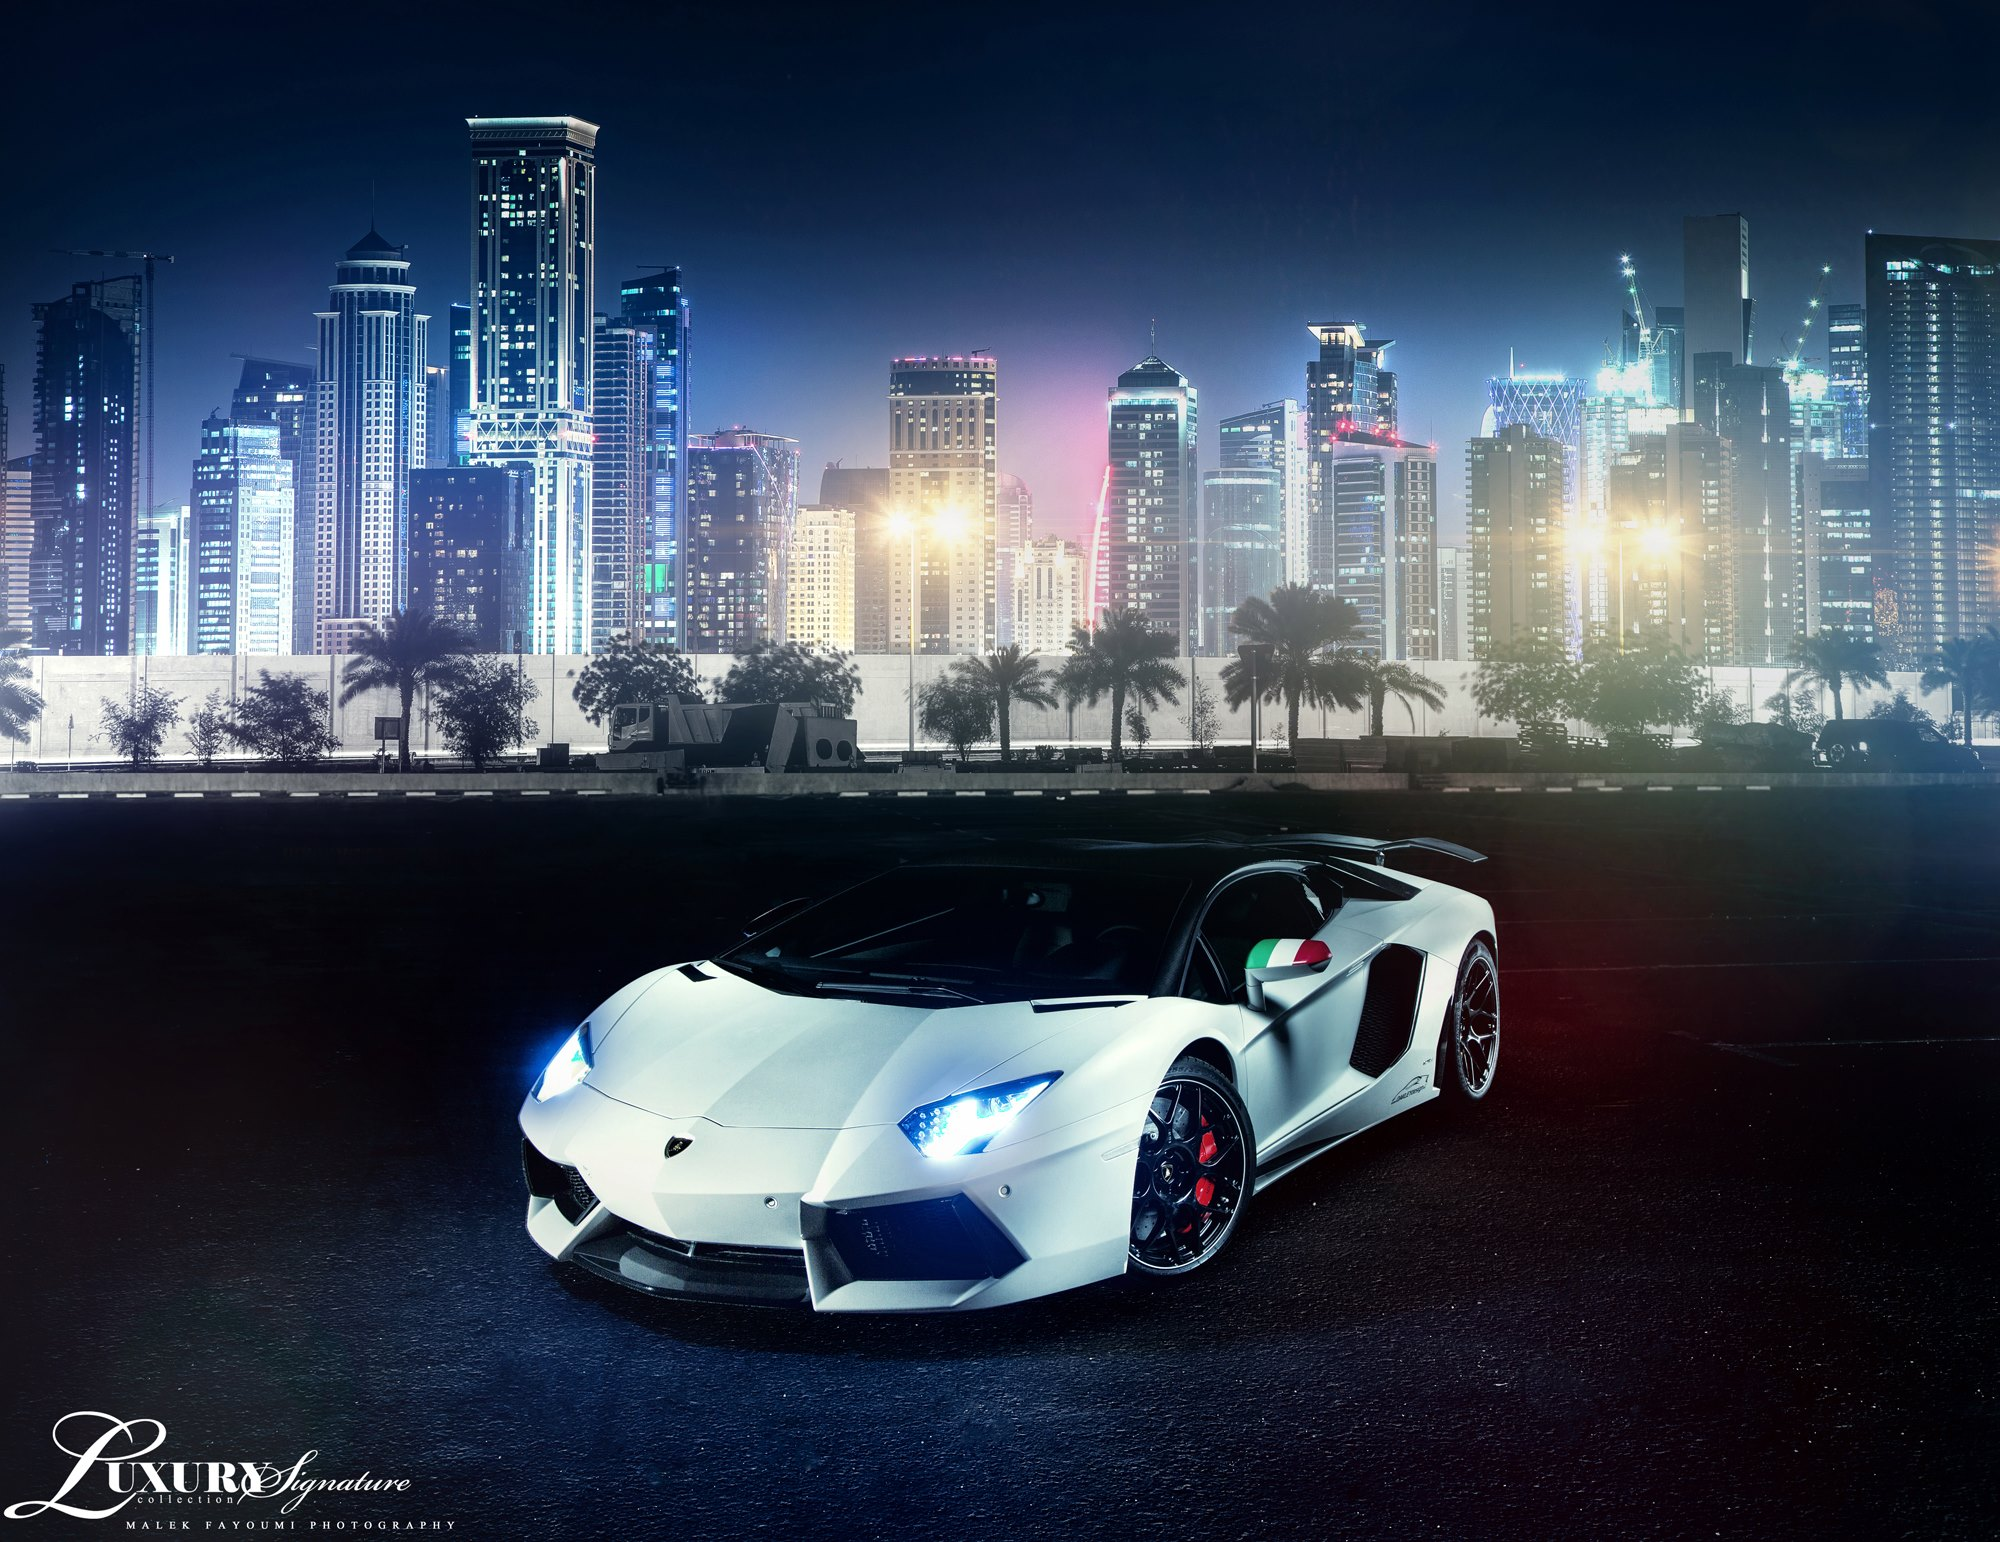 oakley design 790k  Gallery: Lamborghini Aventador LP760 Dragon Edition by Oakley Design